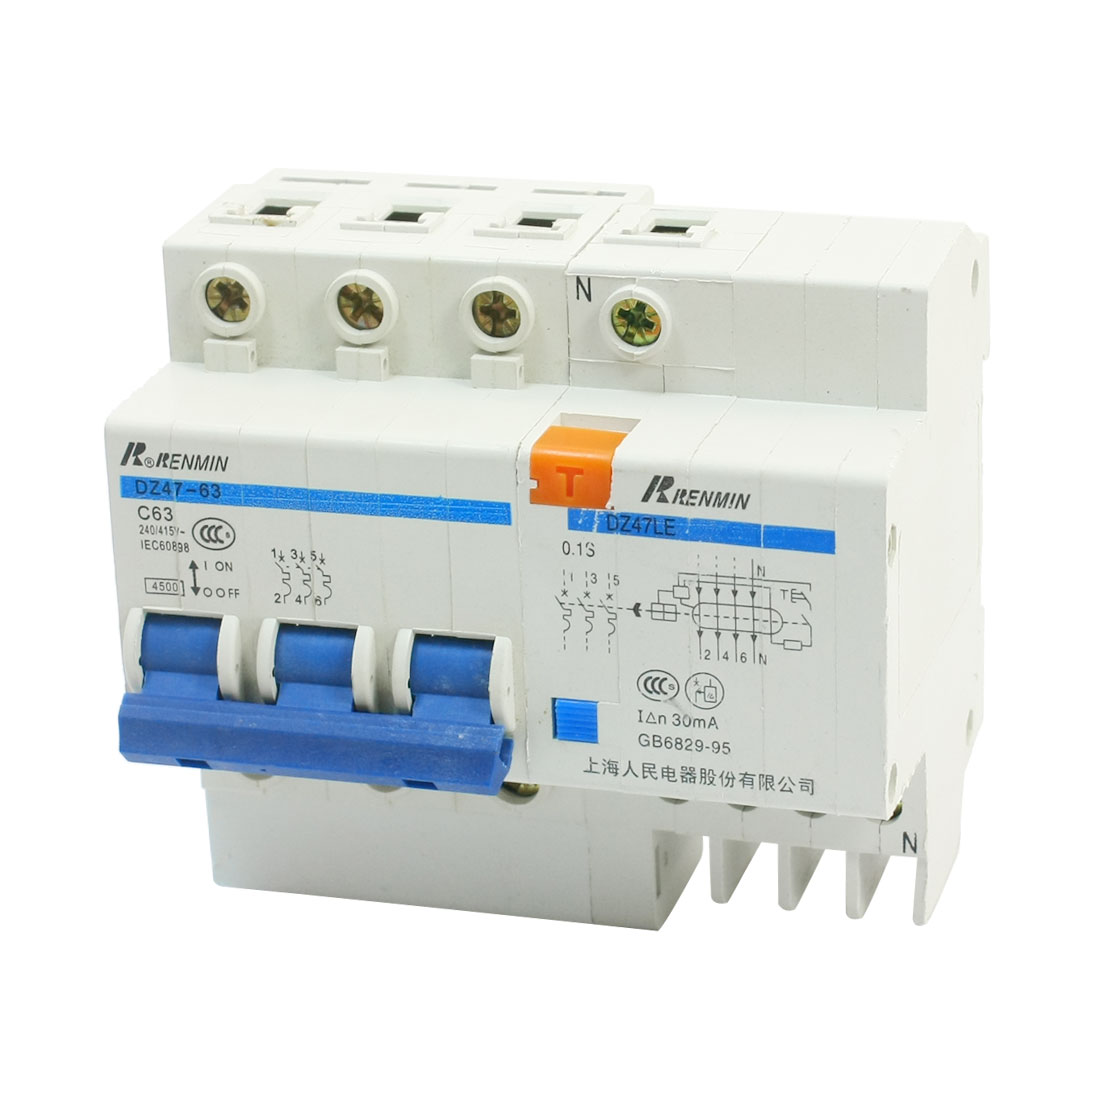 AC400V 63A 4000A Breaking Capacity 3 Phase 3P+N Overload Protection 35mm DIN Rail Mounting MCB Miniature Circuit Breaker DZ47-63 C63